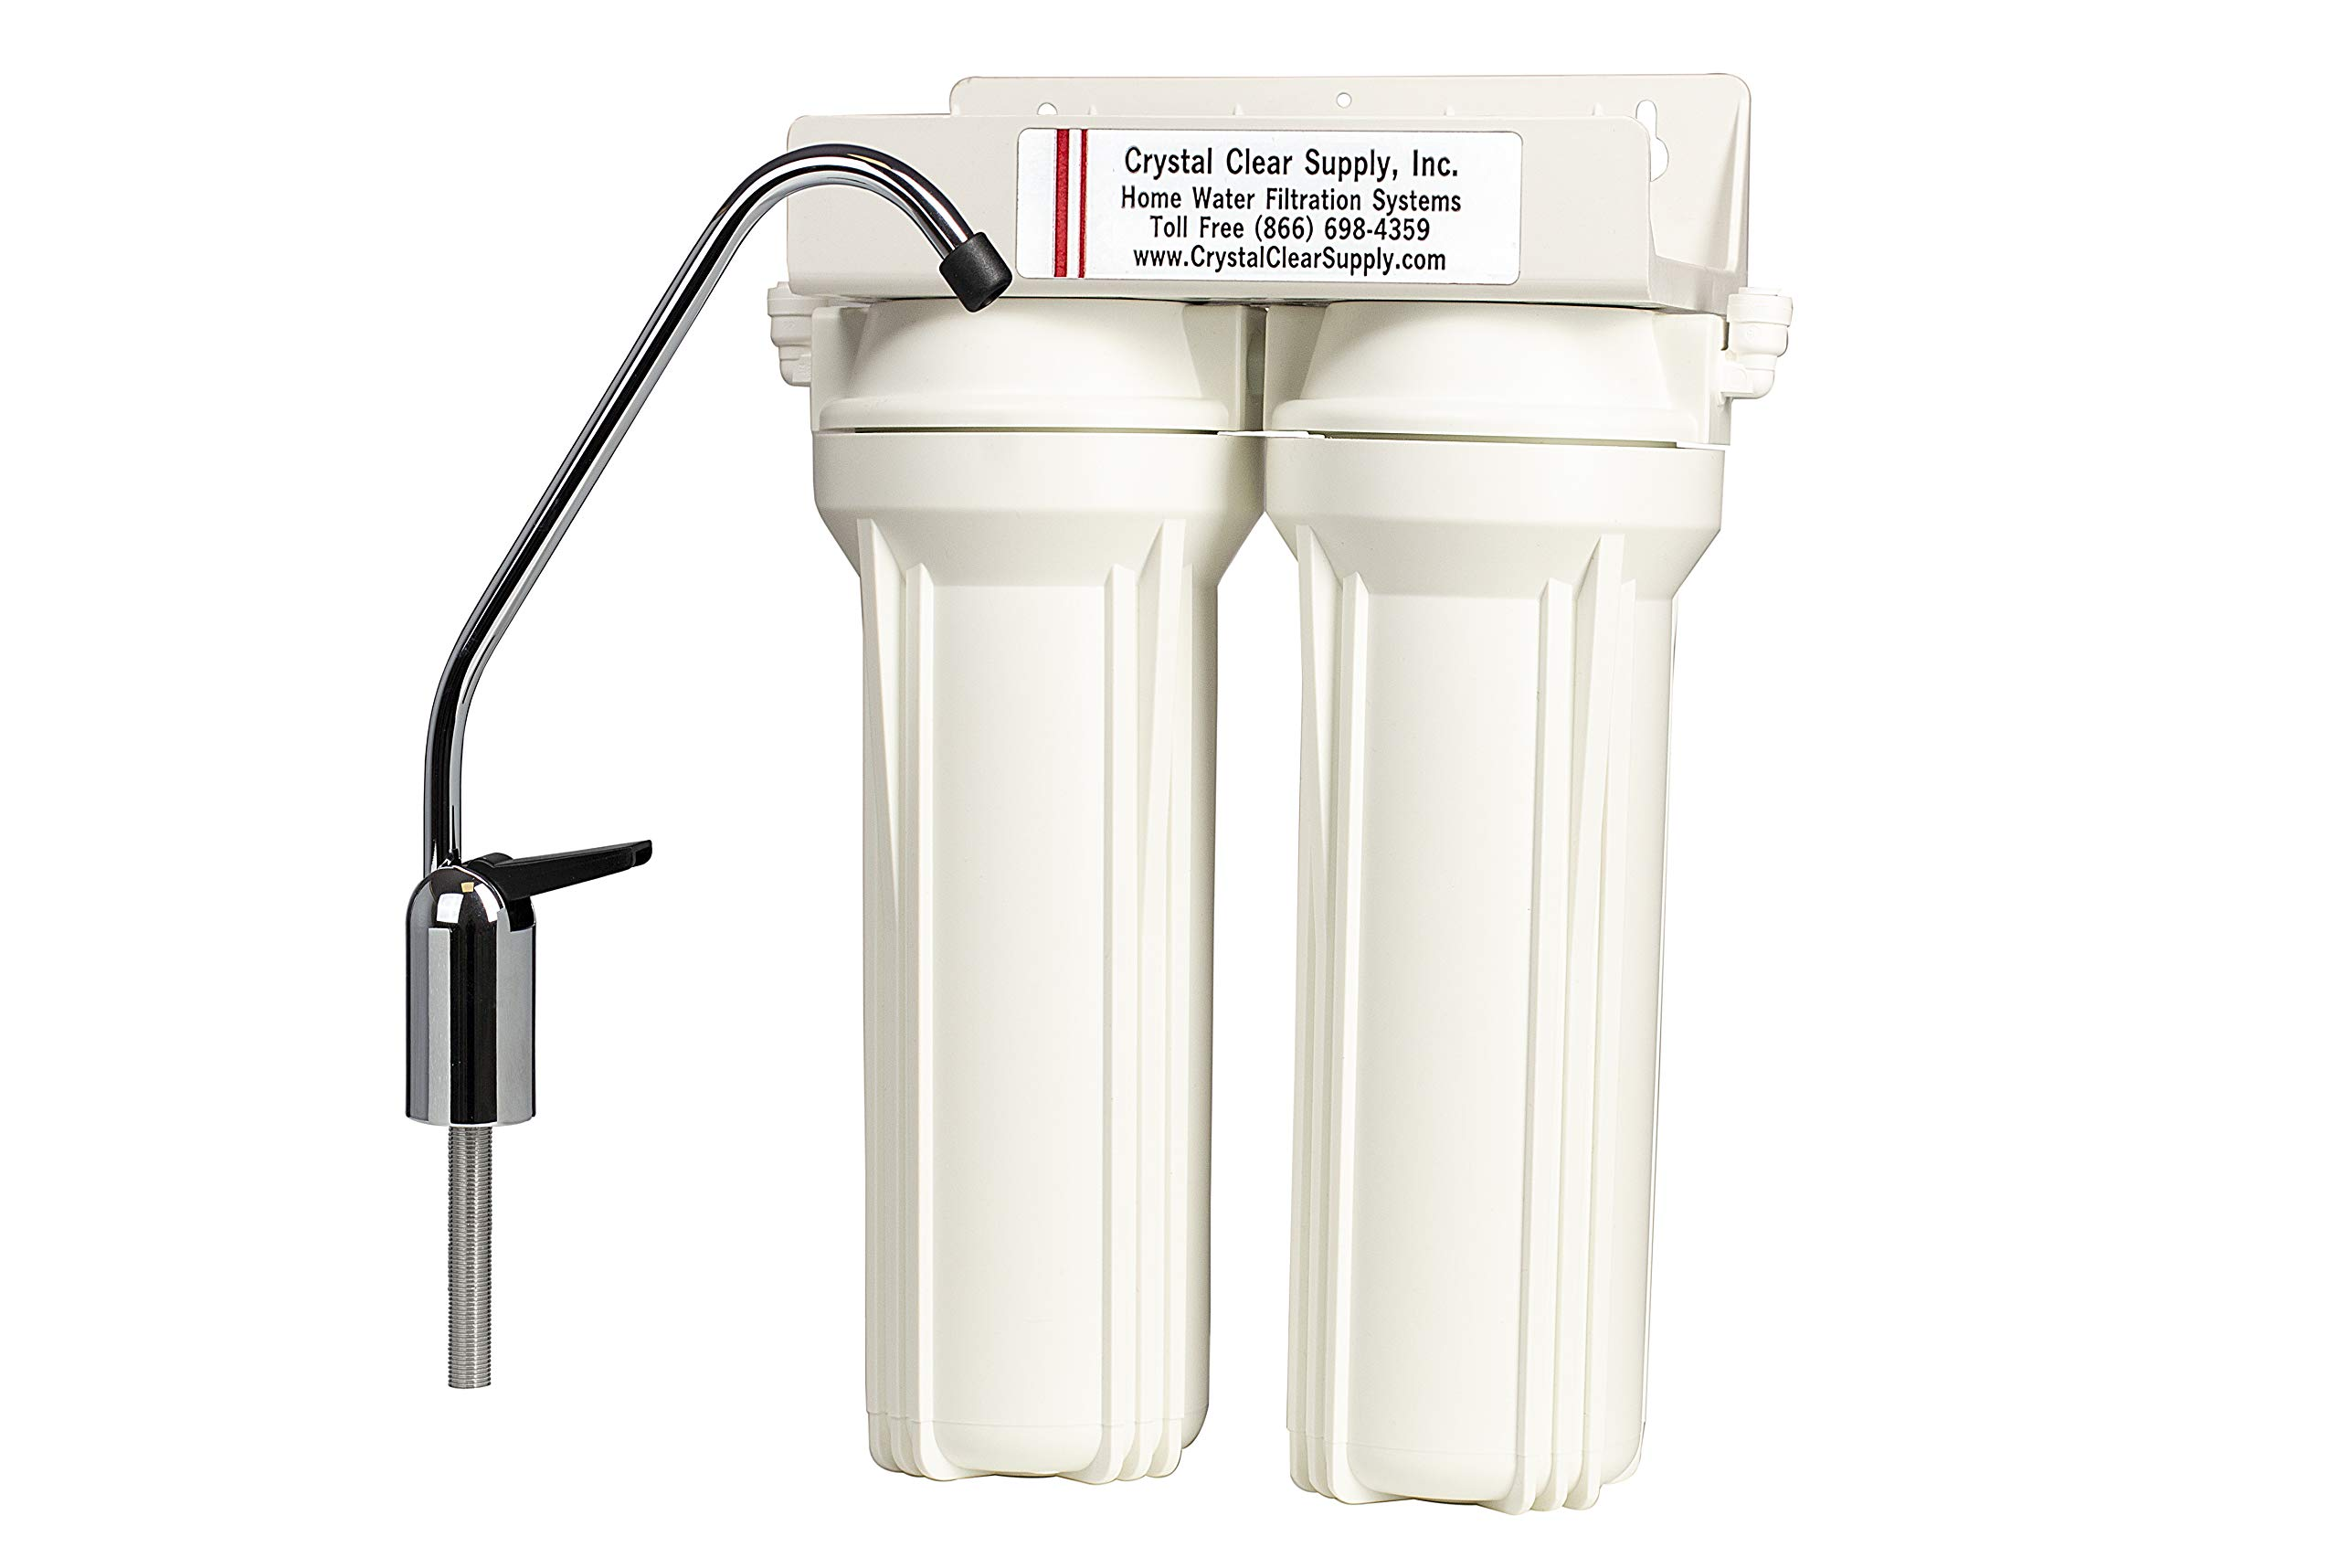 Fluoride Lead Chlorine Removal Undercounter Water Filter System KDF & GAC Leaves Beneficial Minerals